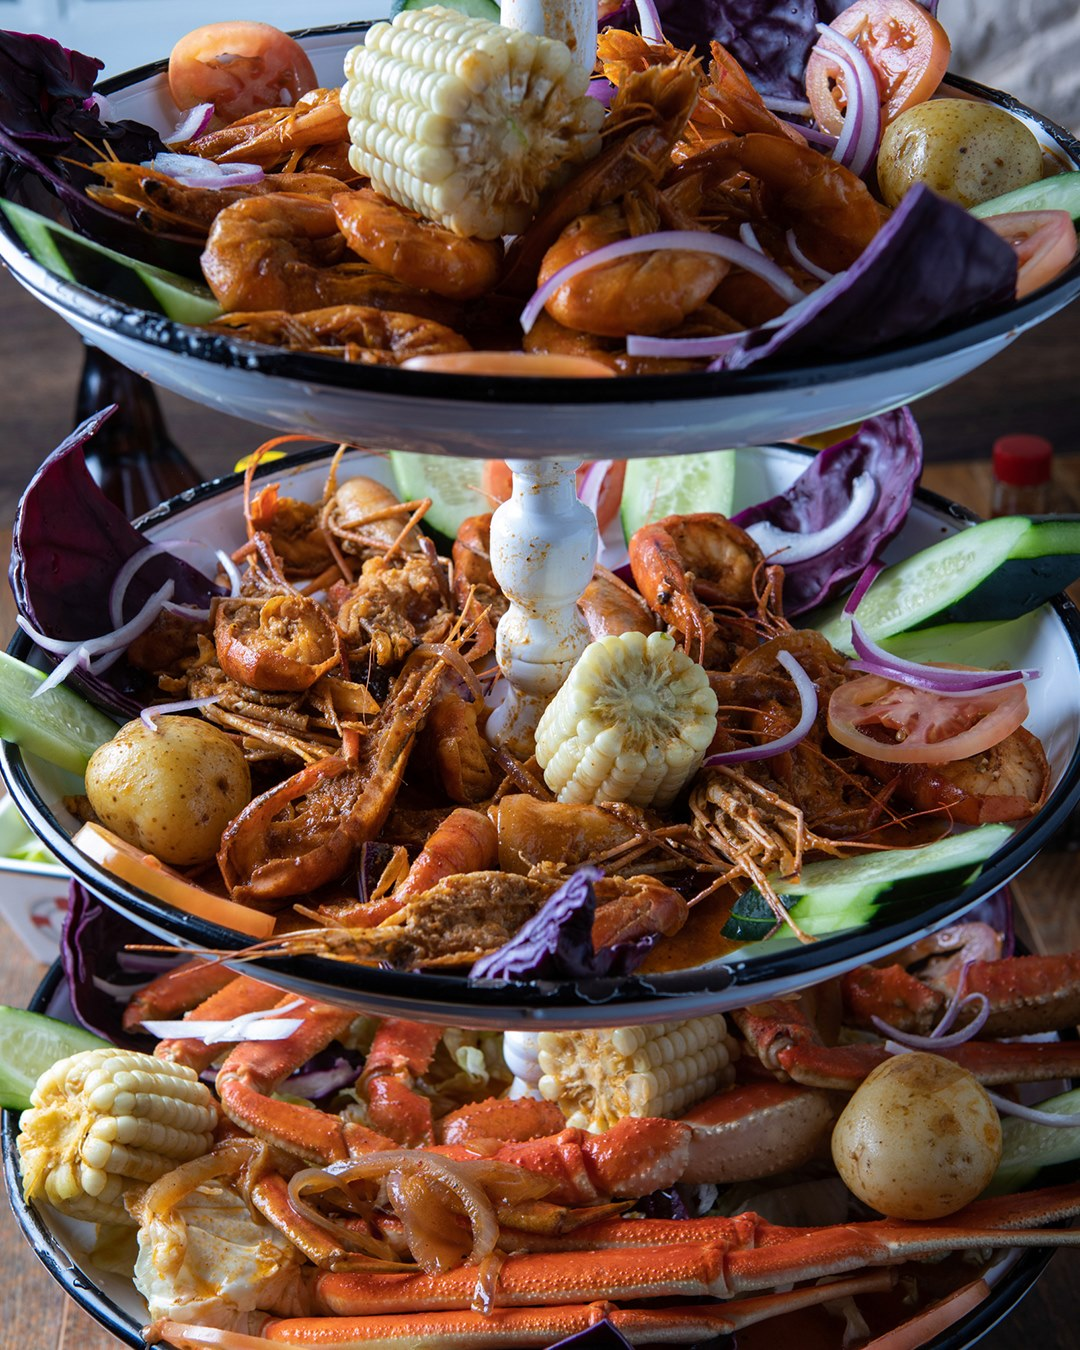 Mariscos Los Cabos Bar and Grill Mexican Seafood Restaurant 4020 Durham-Chapel Hill Blvd, Durham